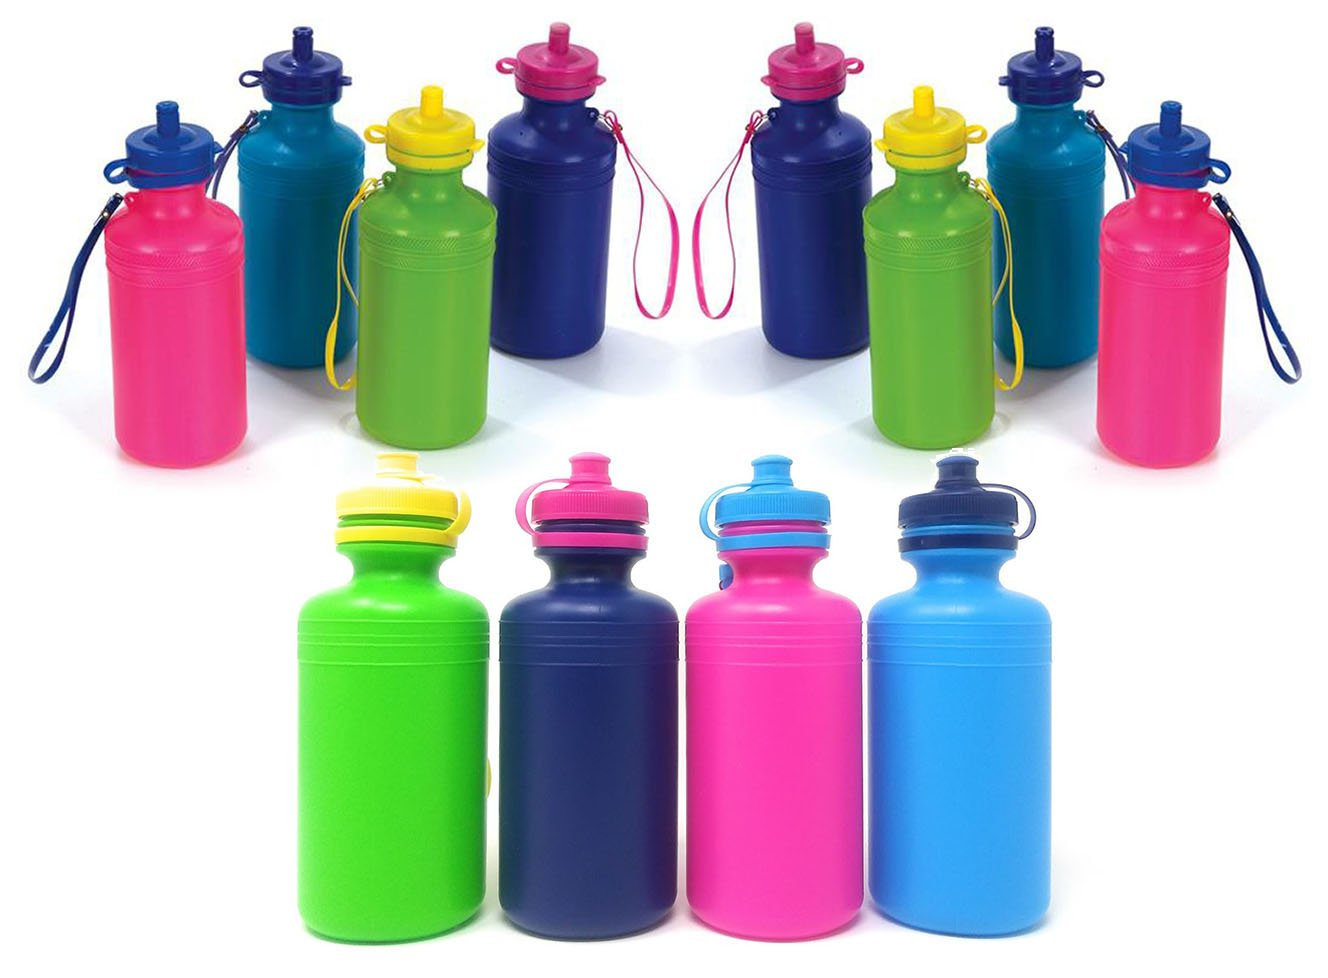 4E's Novelty Water Sports Bottles for Kids & Bikes, Pack of 12 Bulk, 7.5 inches, Great Summer Beach Accessory, Neon Colors - Holds About 18oz of Water by 4E's Novelty (Image #1)